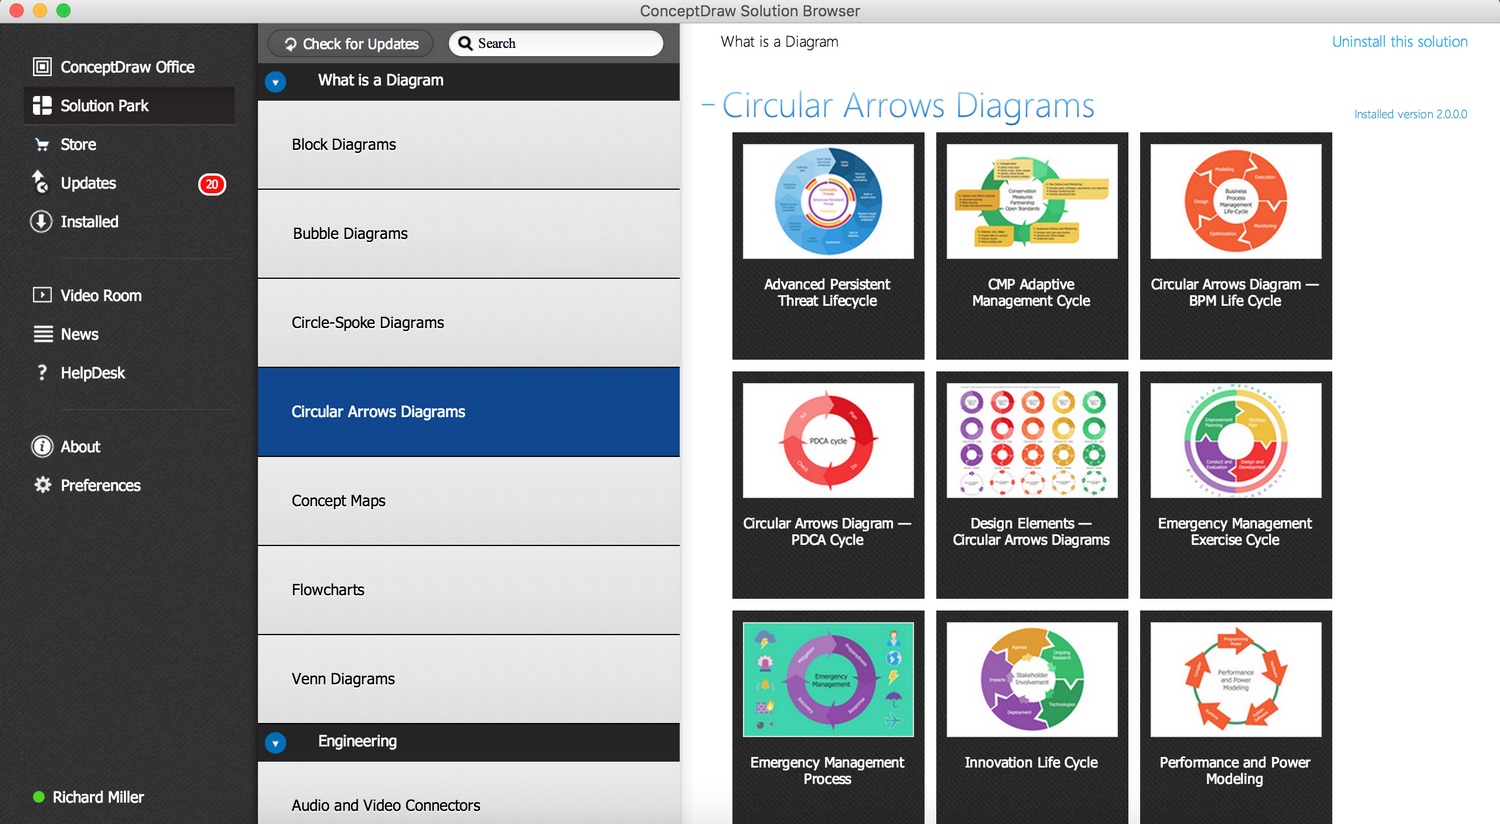 Circular Arrows Diagrams solution - Start Using